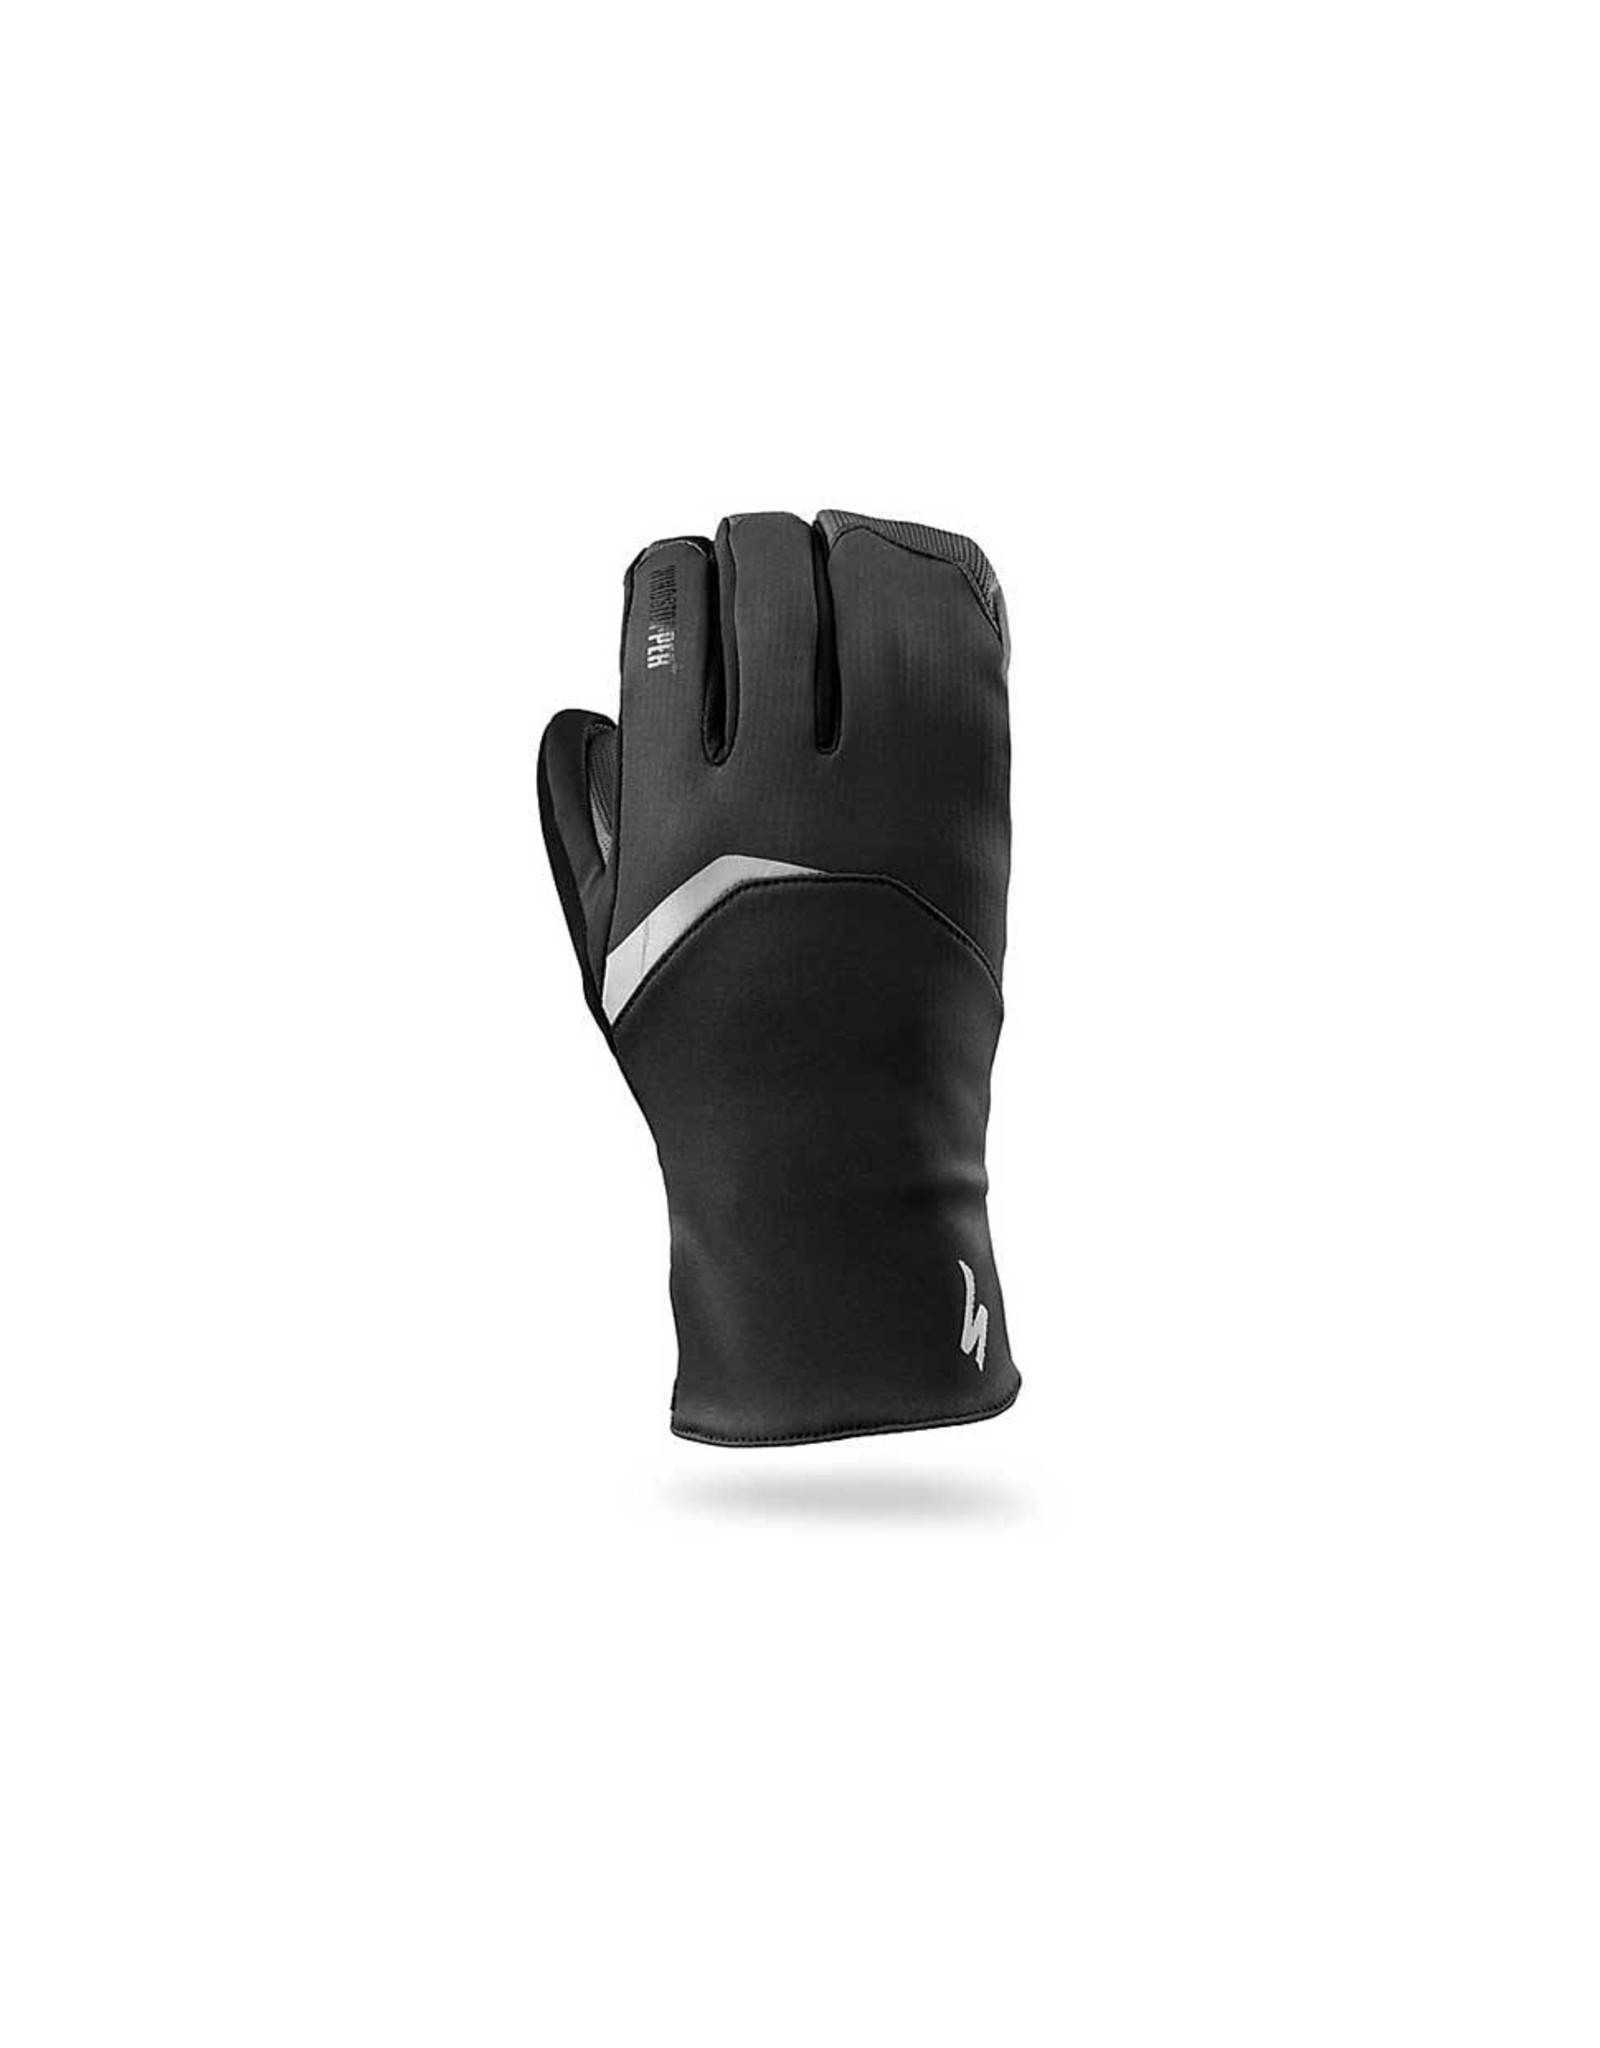 SPECIALIZED Element 2.0 Glove Long Finger - Black - X-Small